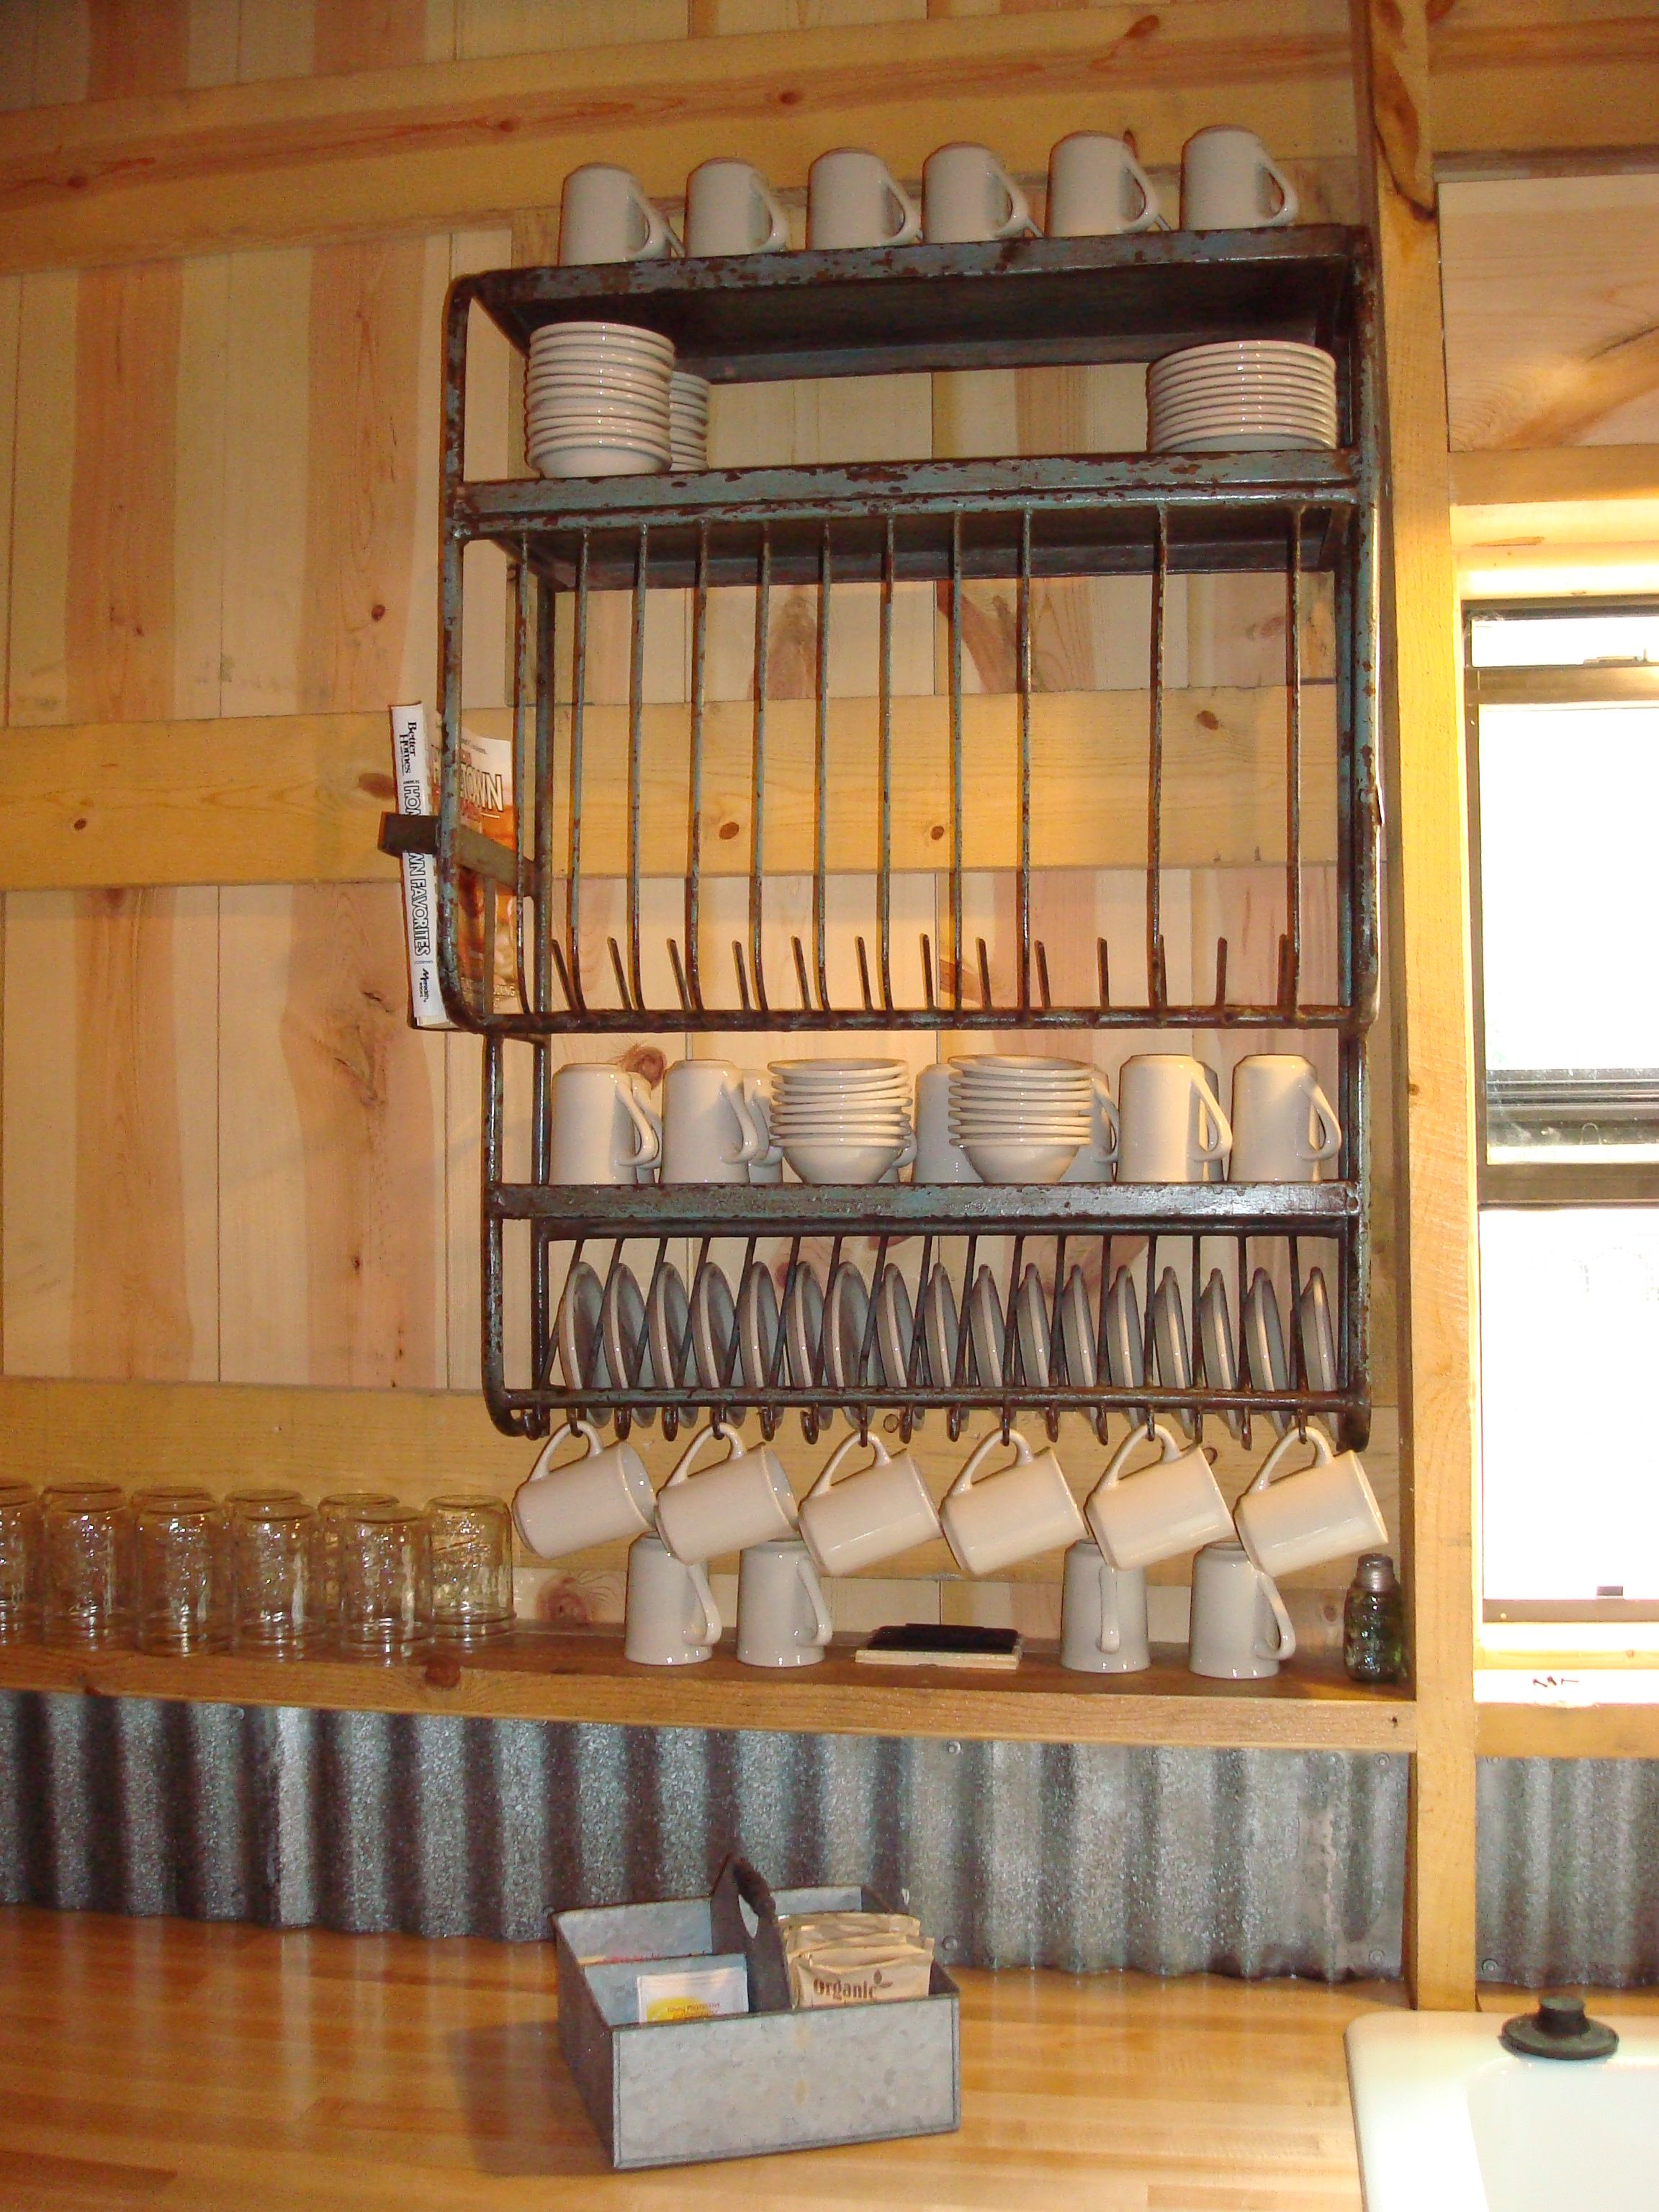 Wall Dish Rack Getting Closer Plates On Wall Plate